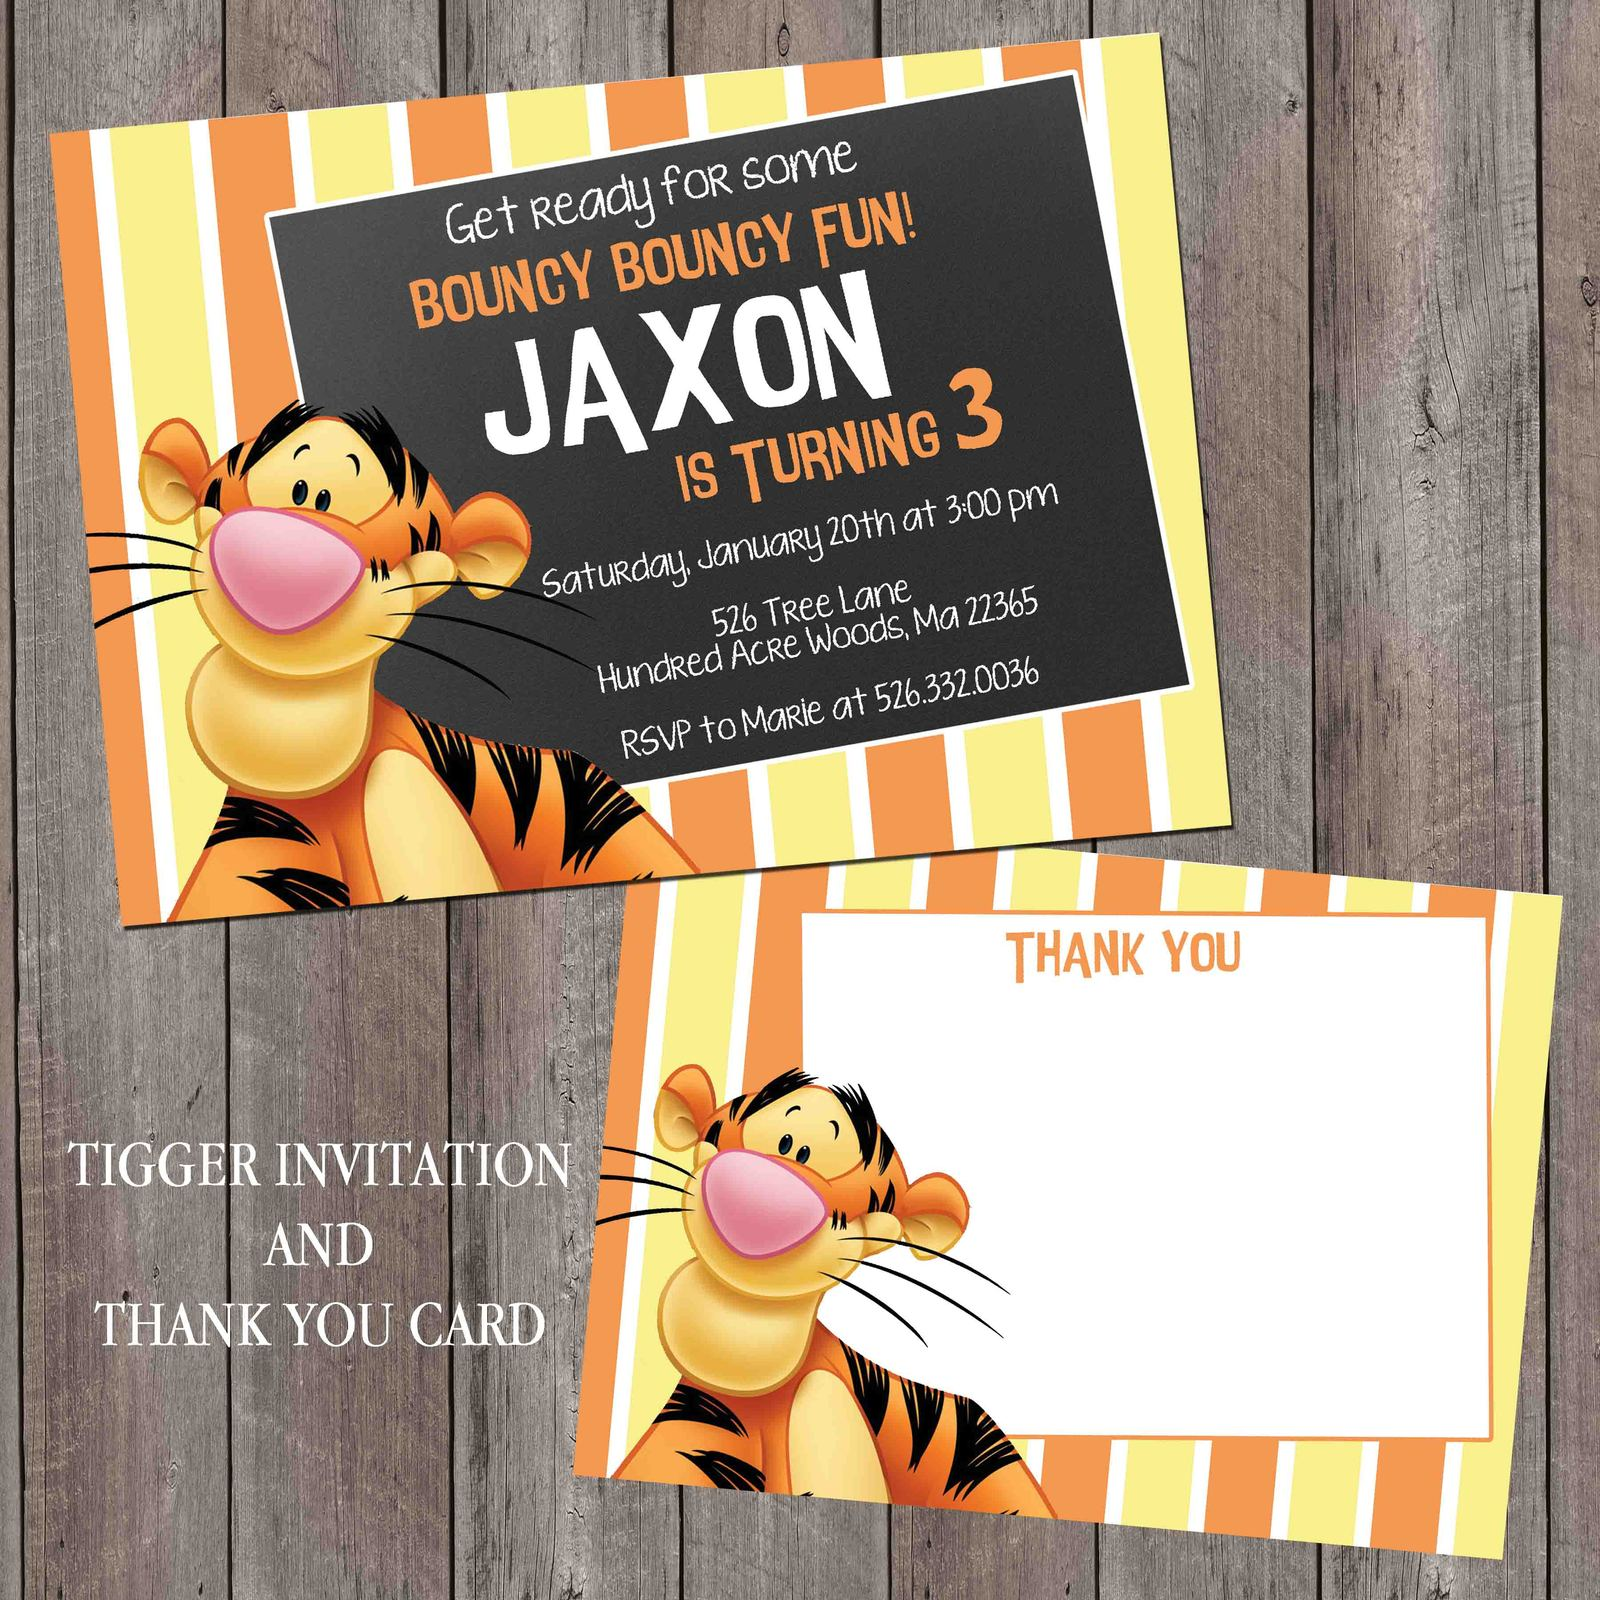 Tigger birthday invitation personalized and 50 similar items tigger birthday invitation personalized chalkboard thank you card set filmwisefo